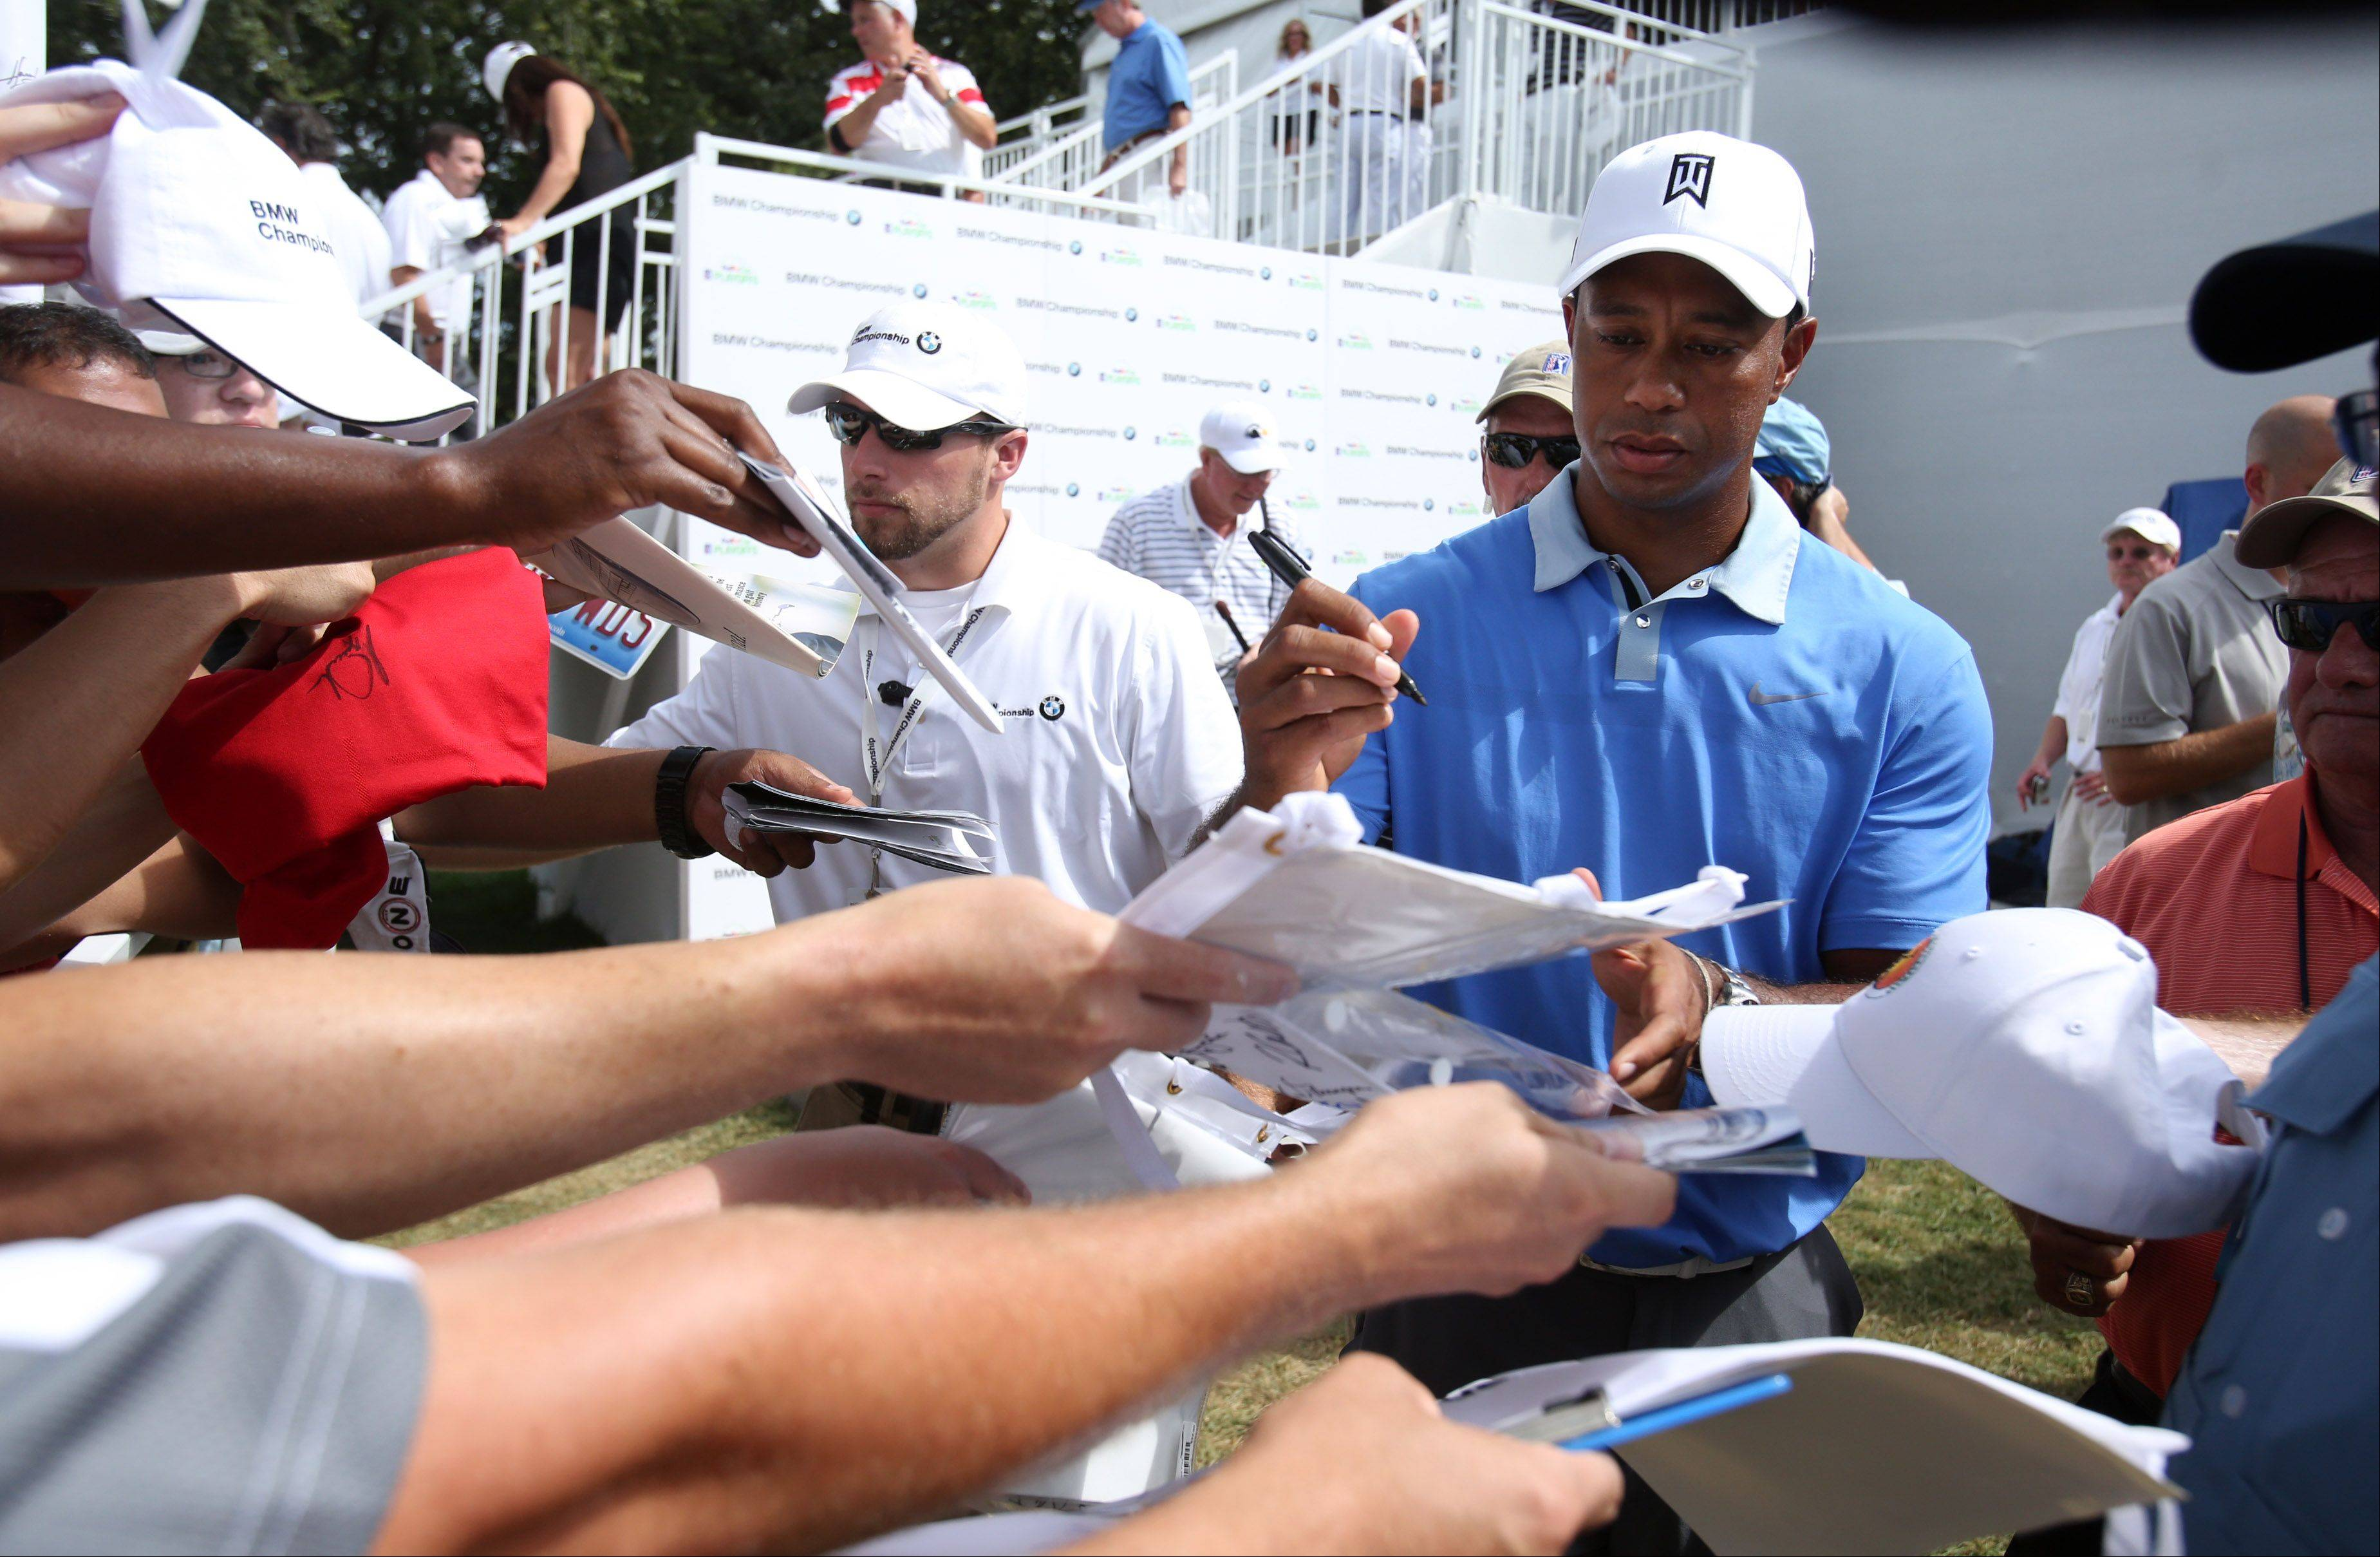 Fans try to get Tiger Woods' autograph.